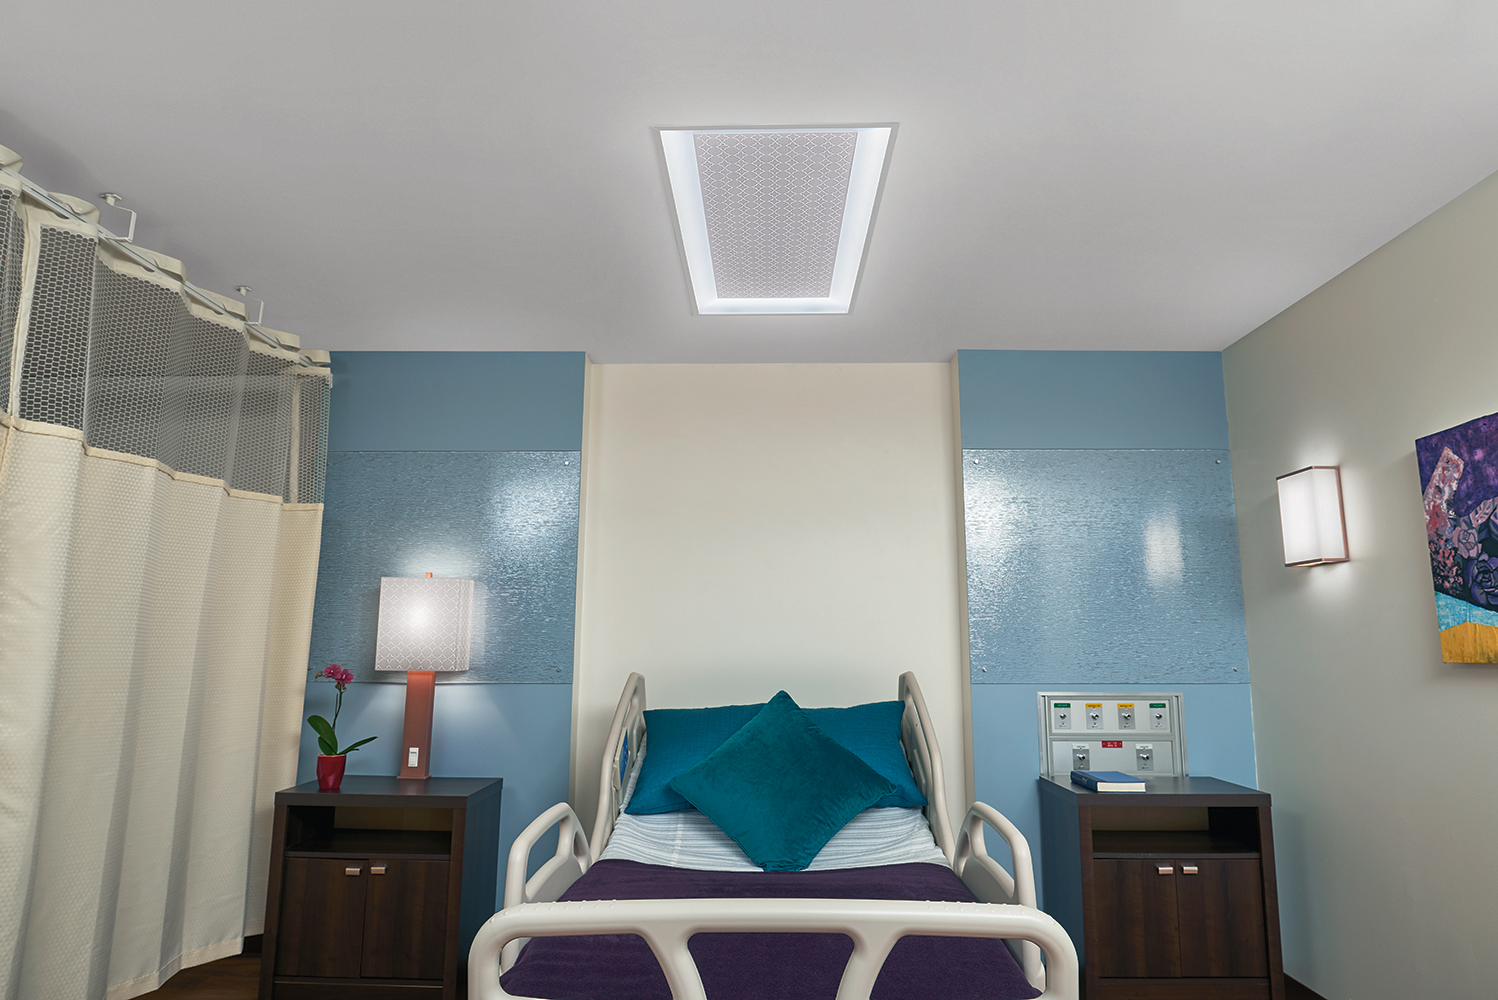 Serenity patient room lighting fixtures illuminate a hospital bed from a table lamp, overbed luminaire, and wall sconce.